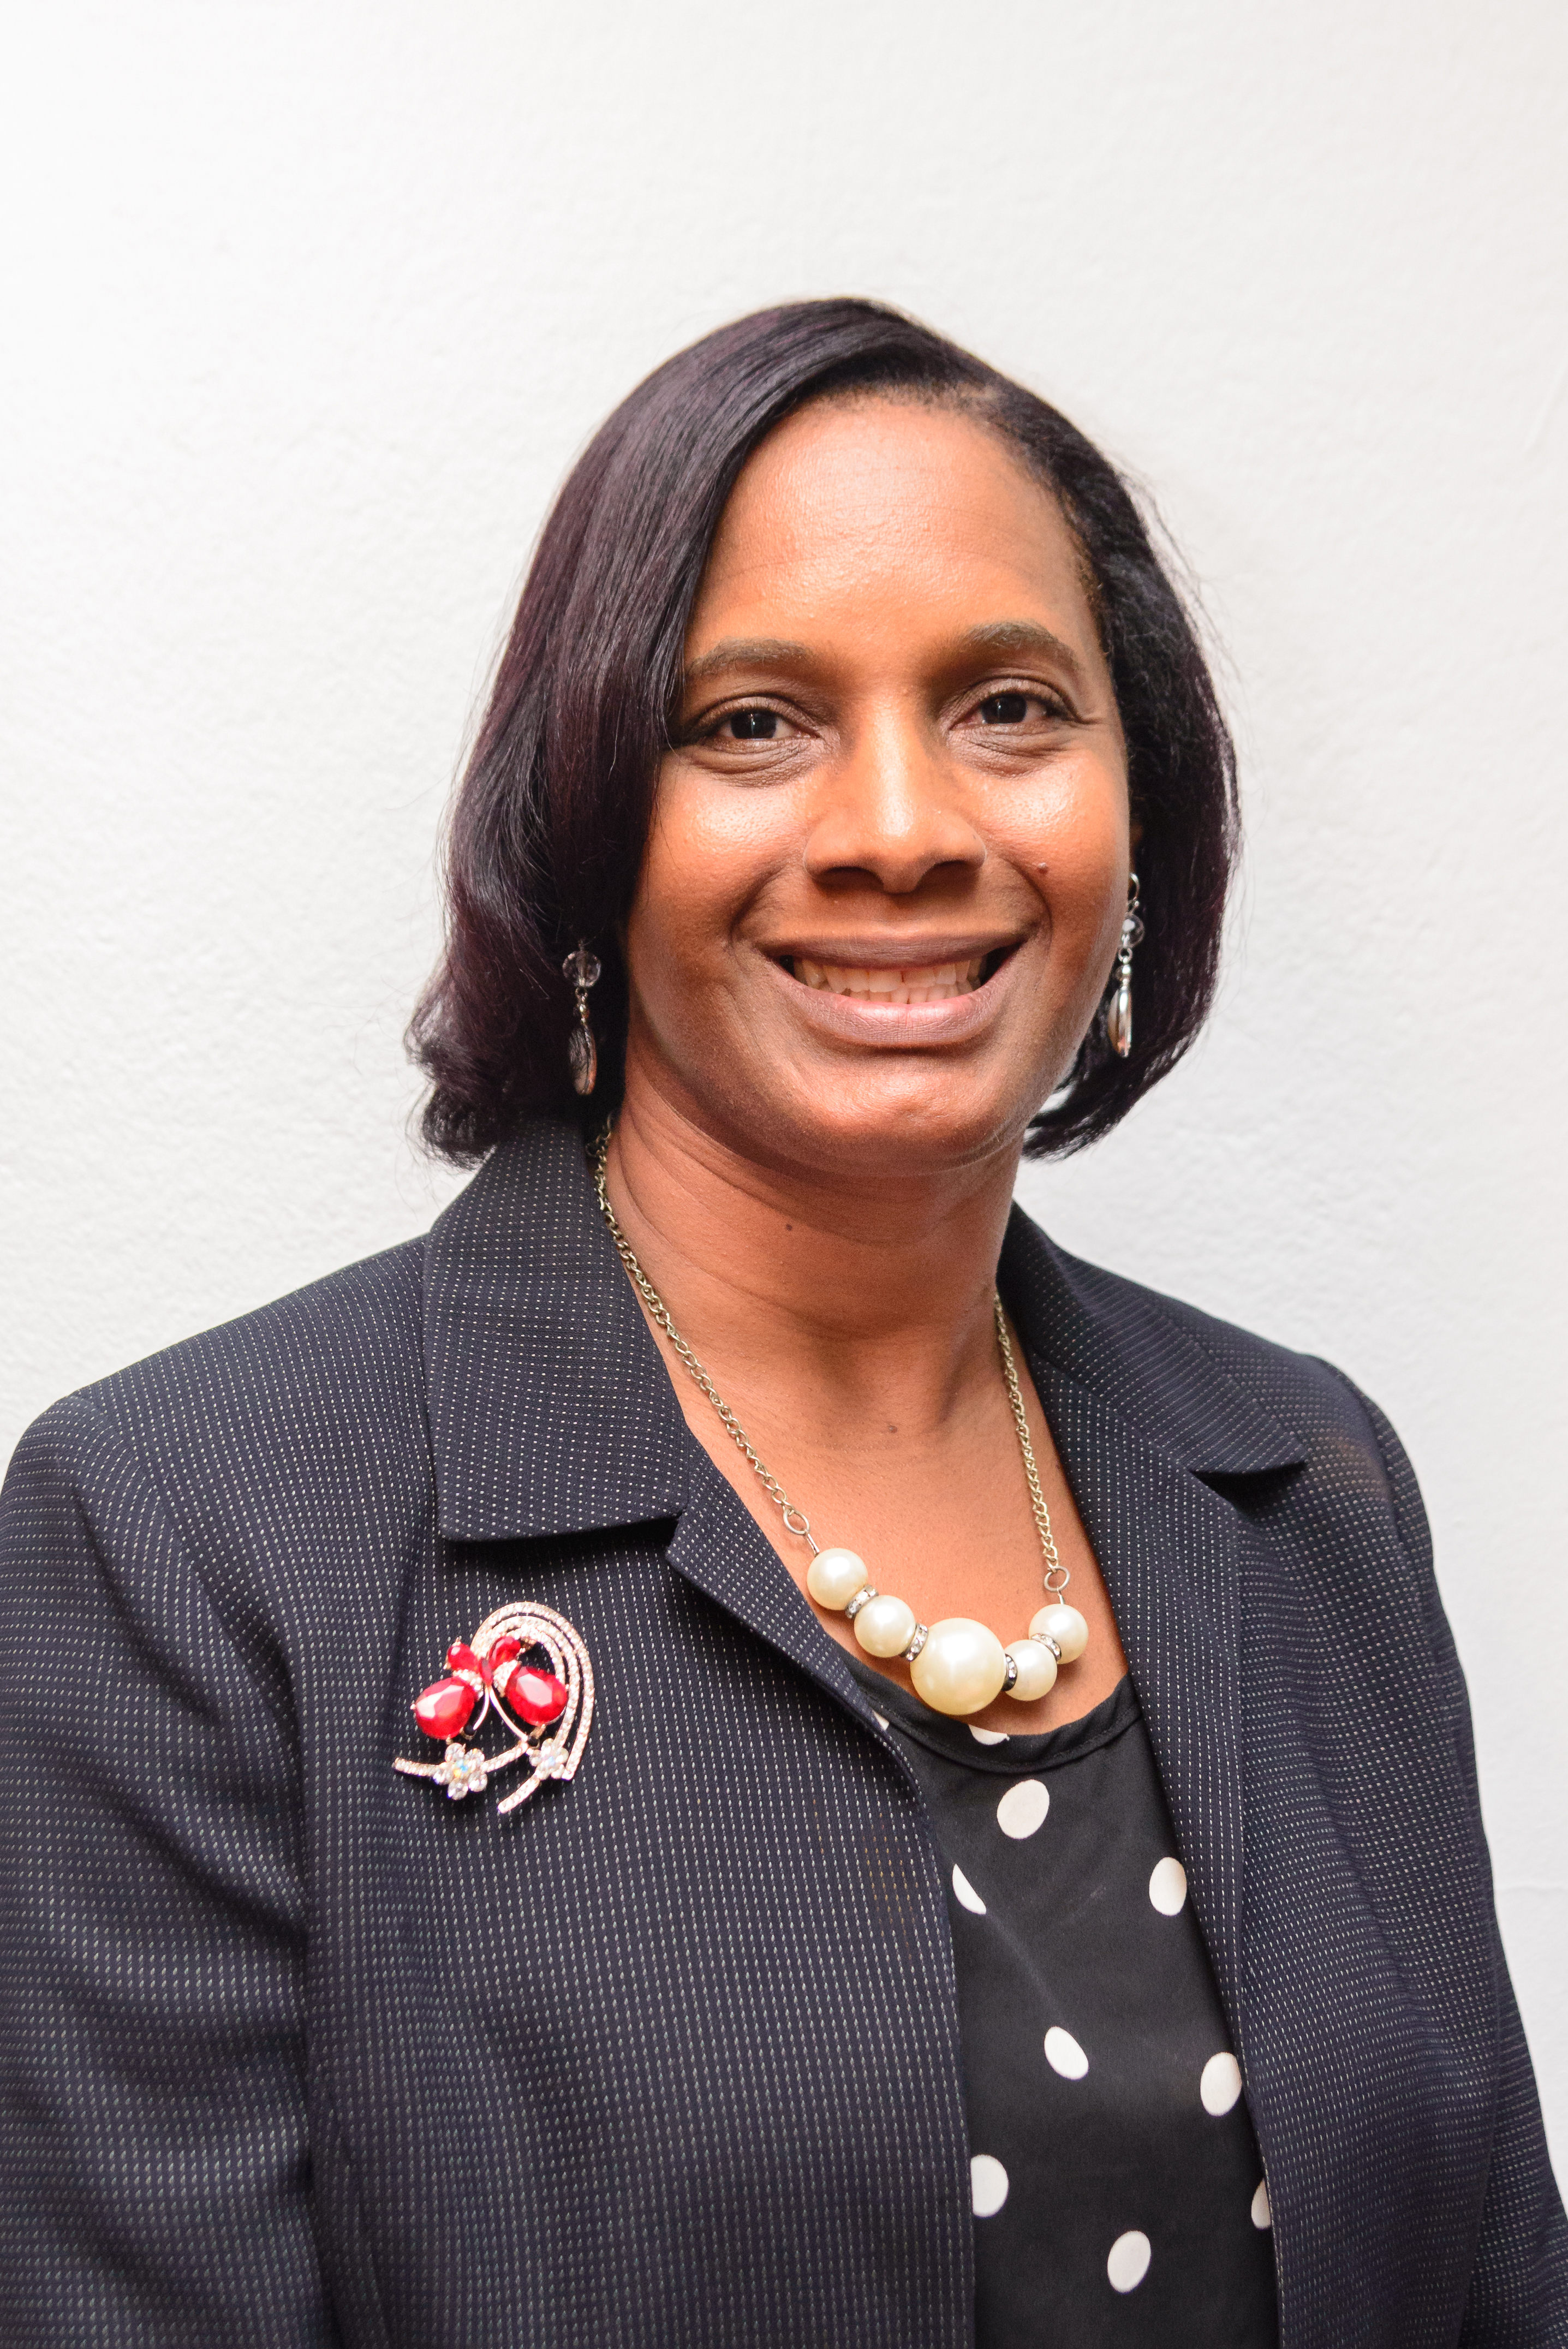 MRS. DIONE JENNINGS: CHIEF TECHNICAL DIRECTOR